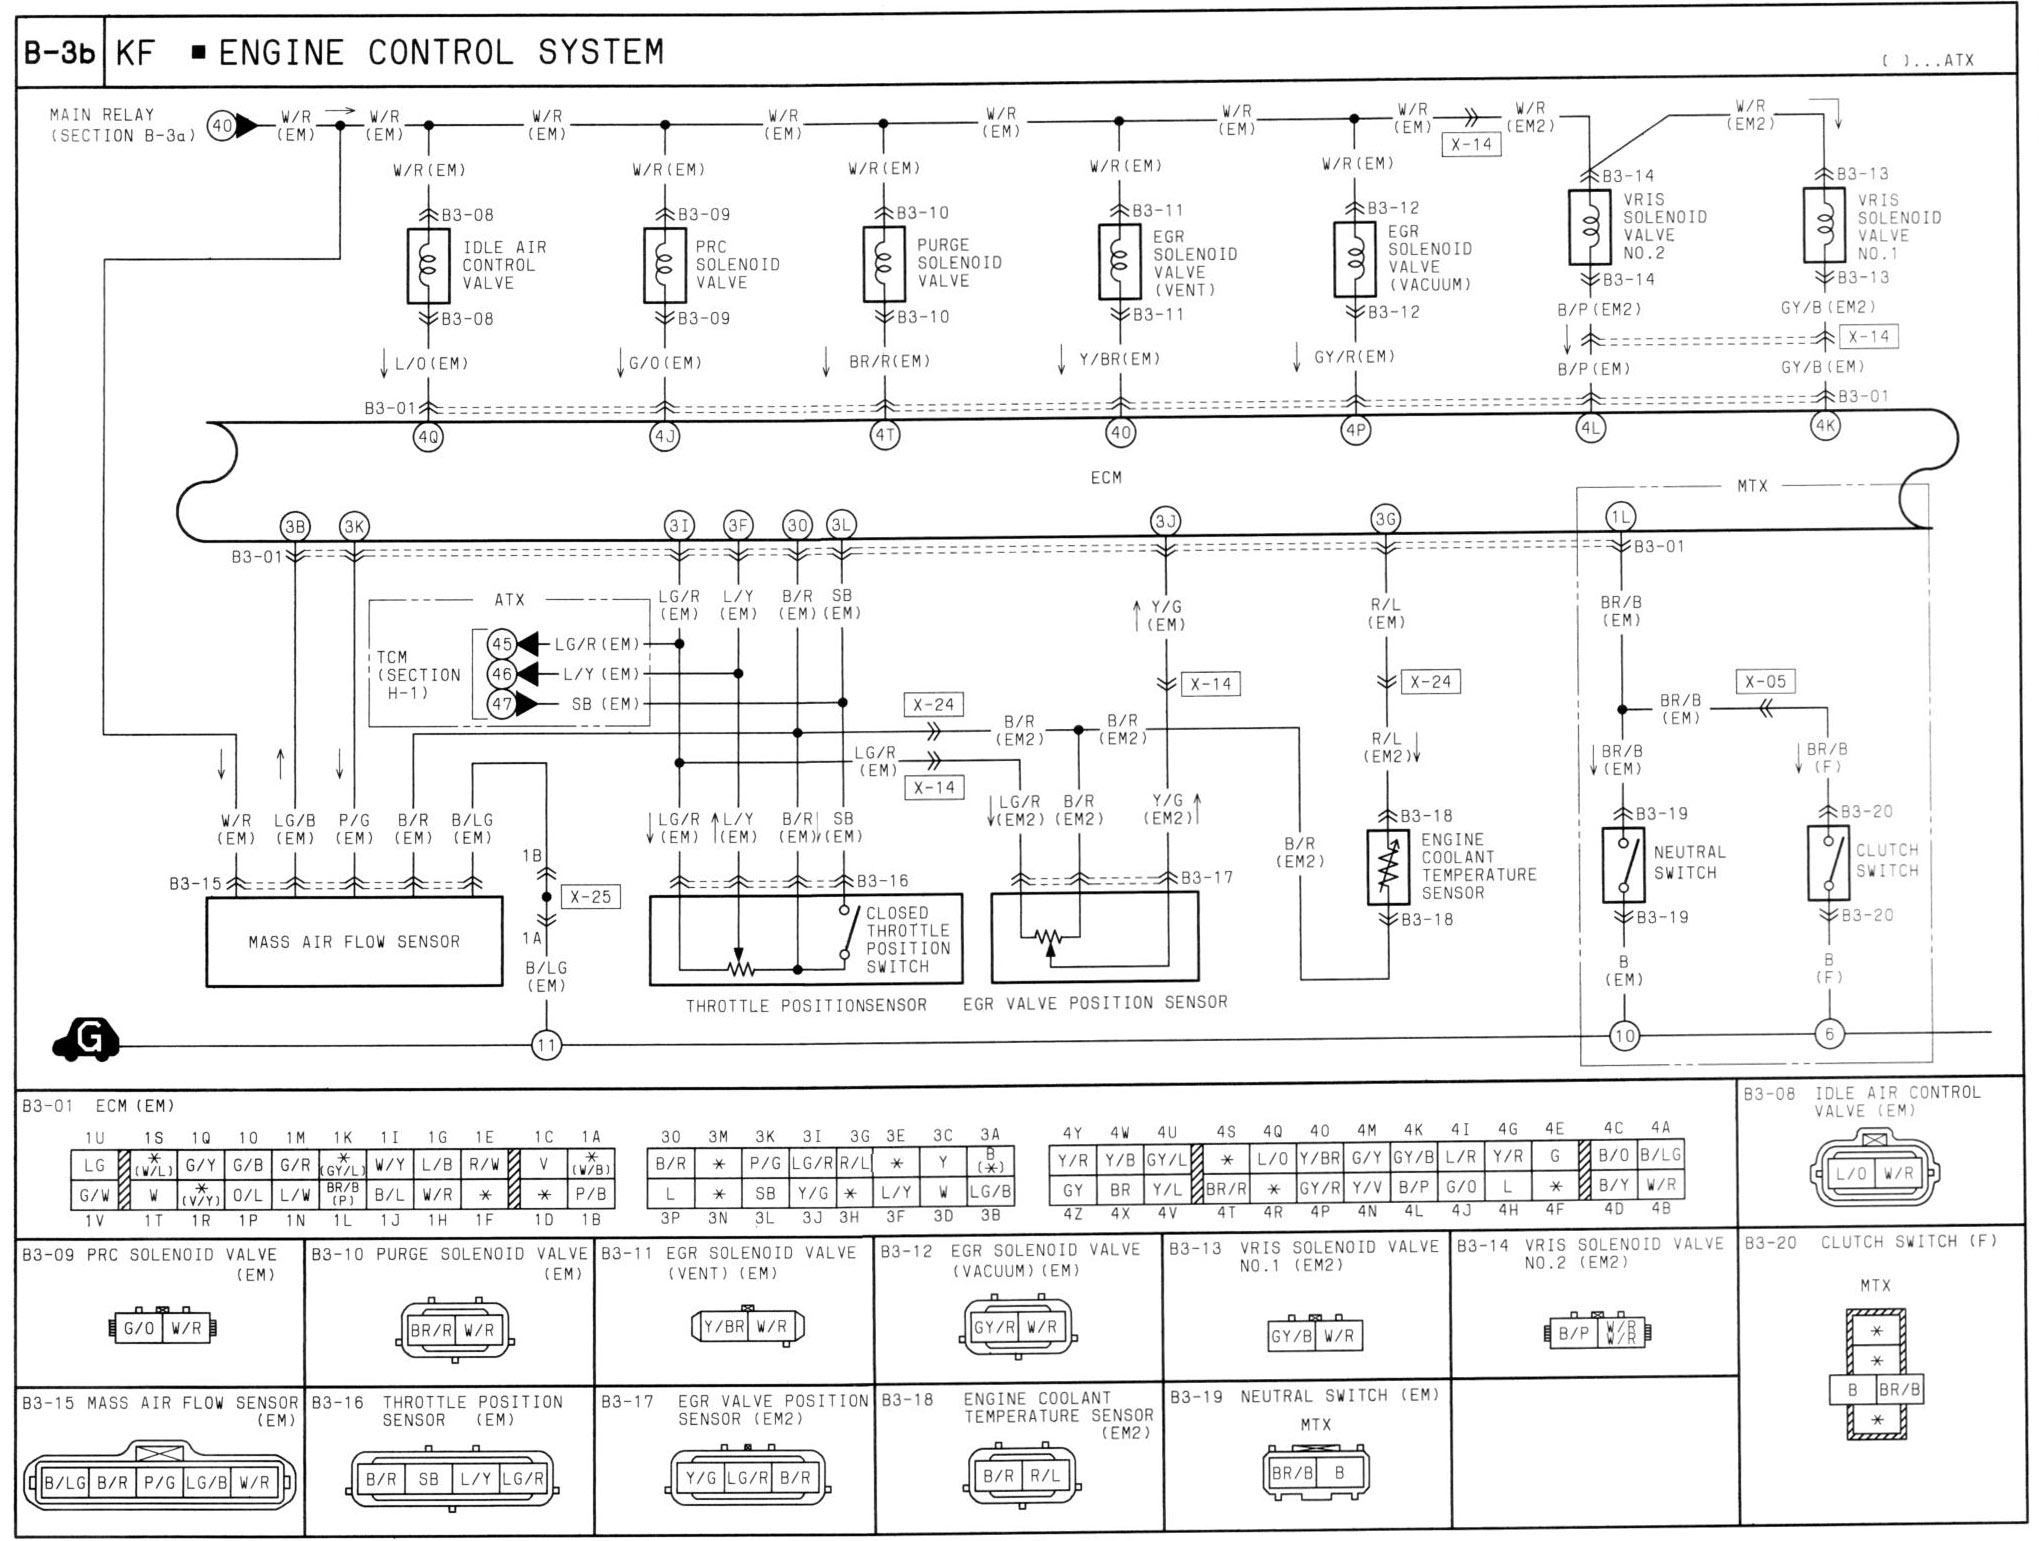 94 V6 Lantis Engine Bay Fuse Diagram Archive Astinagt Forums 3g Wiring Schematic